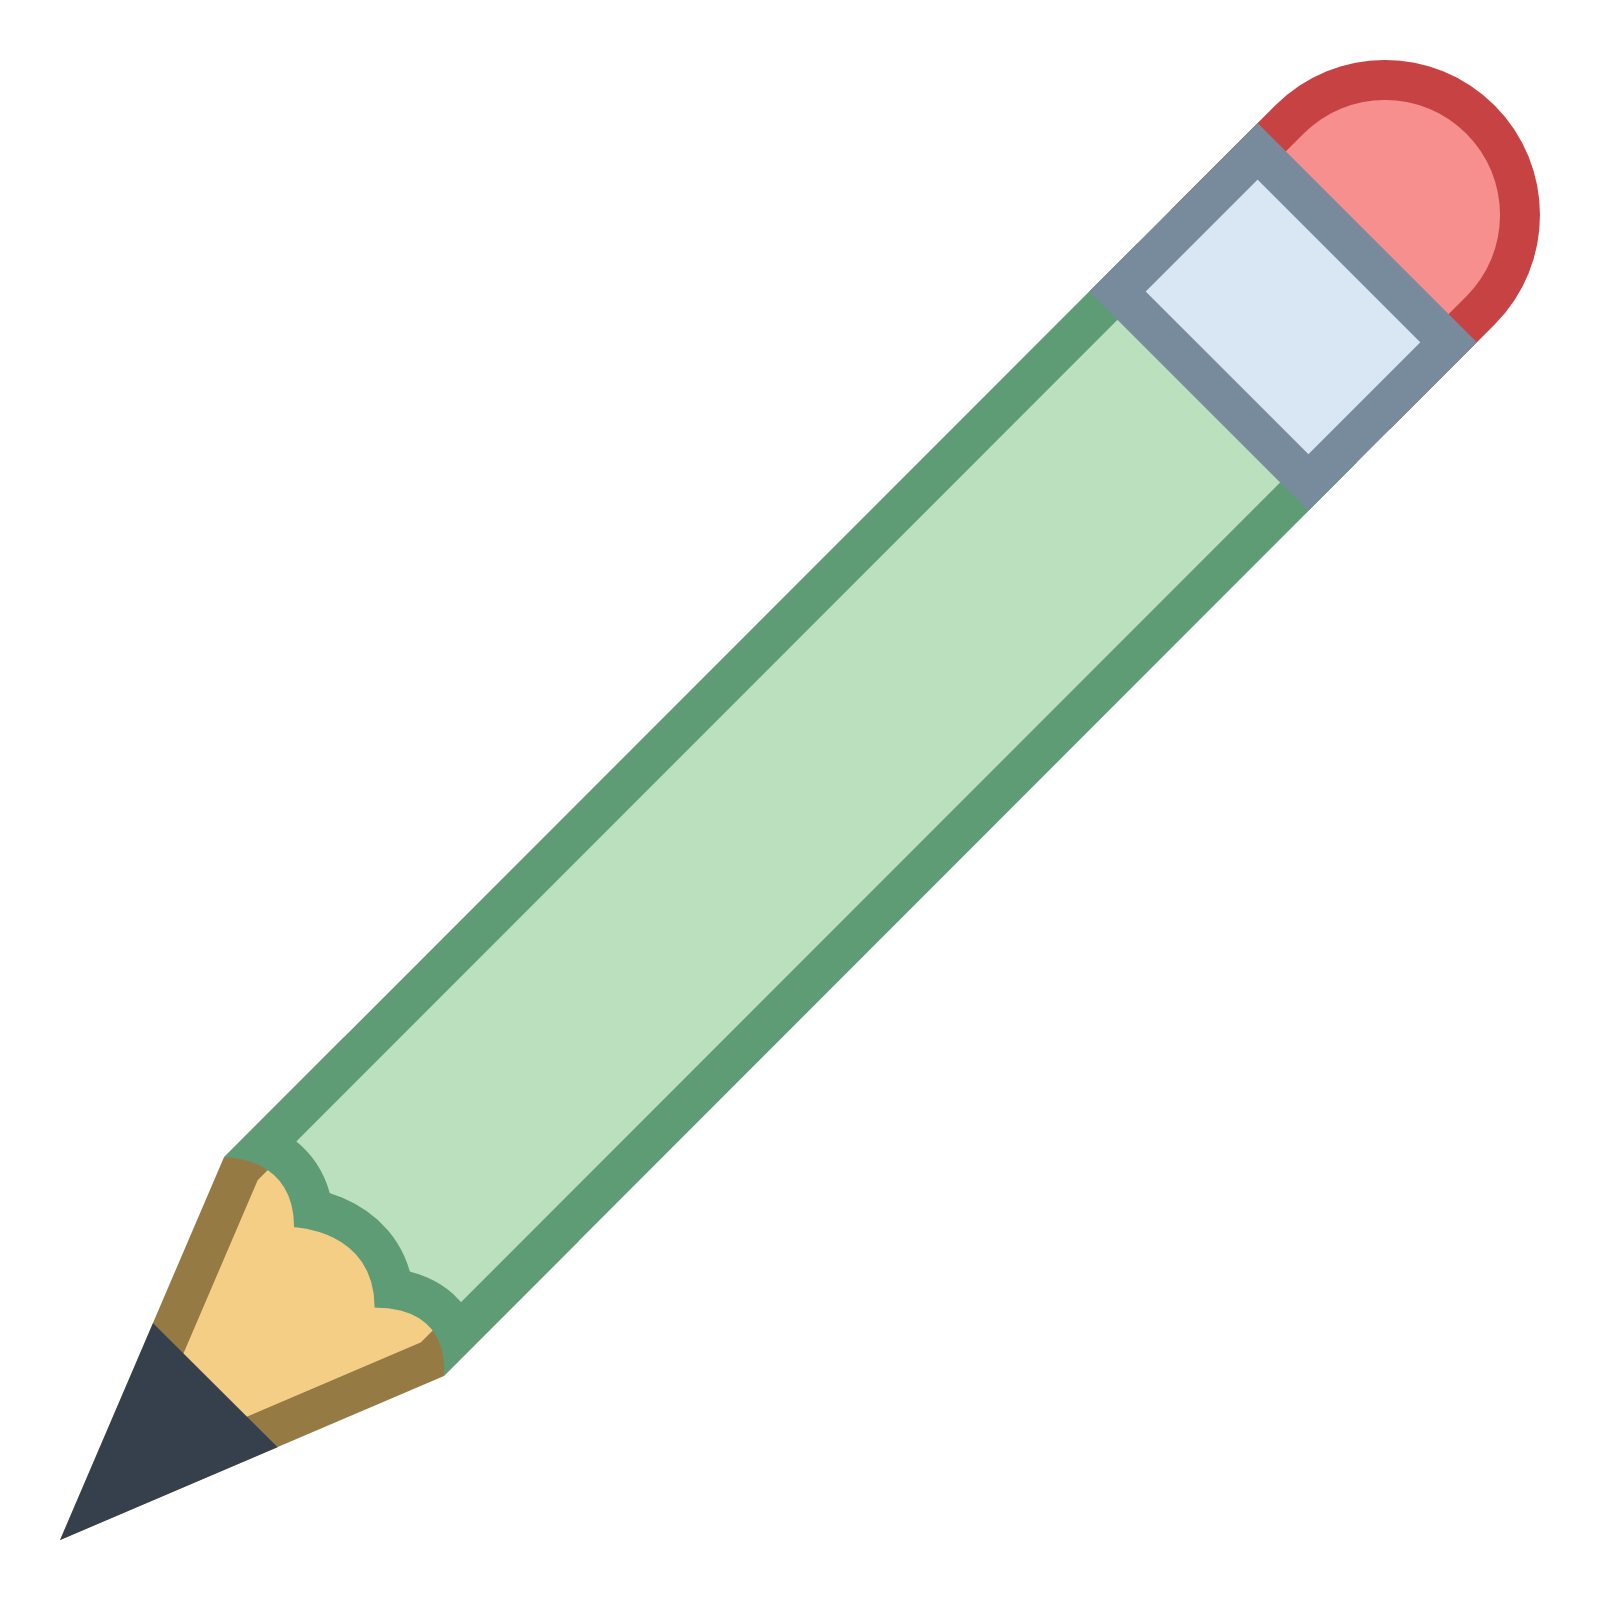 pencil icon png - HD1600×1600